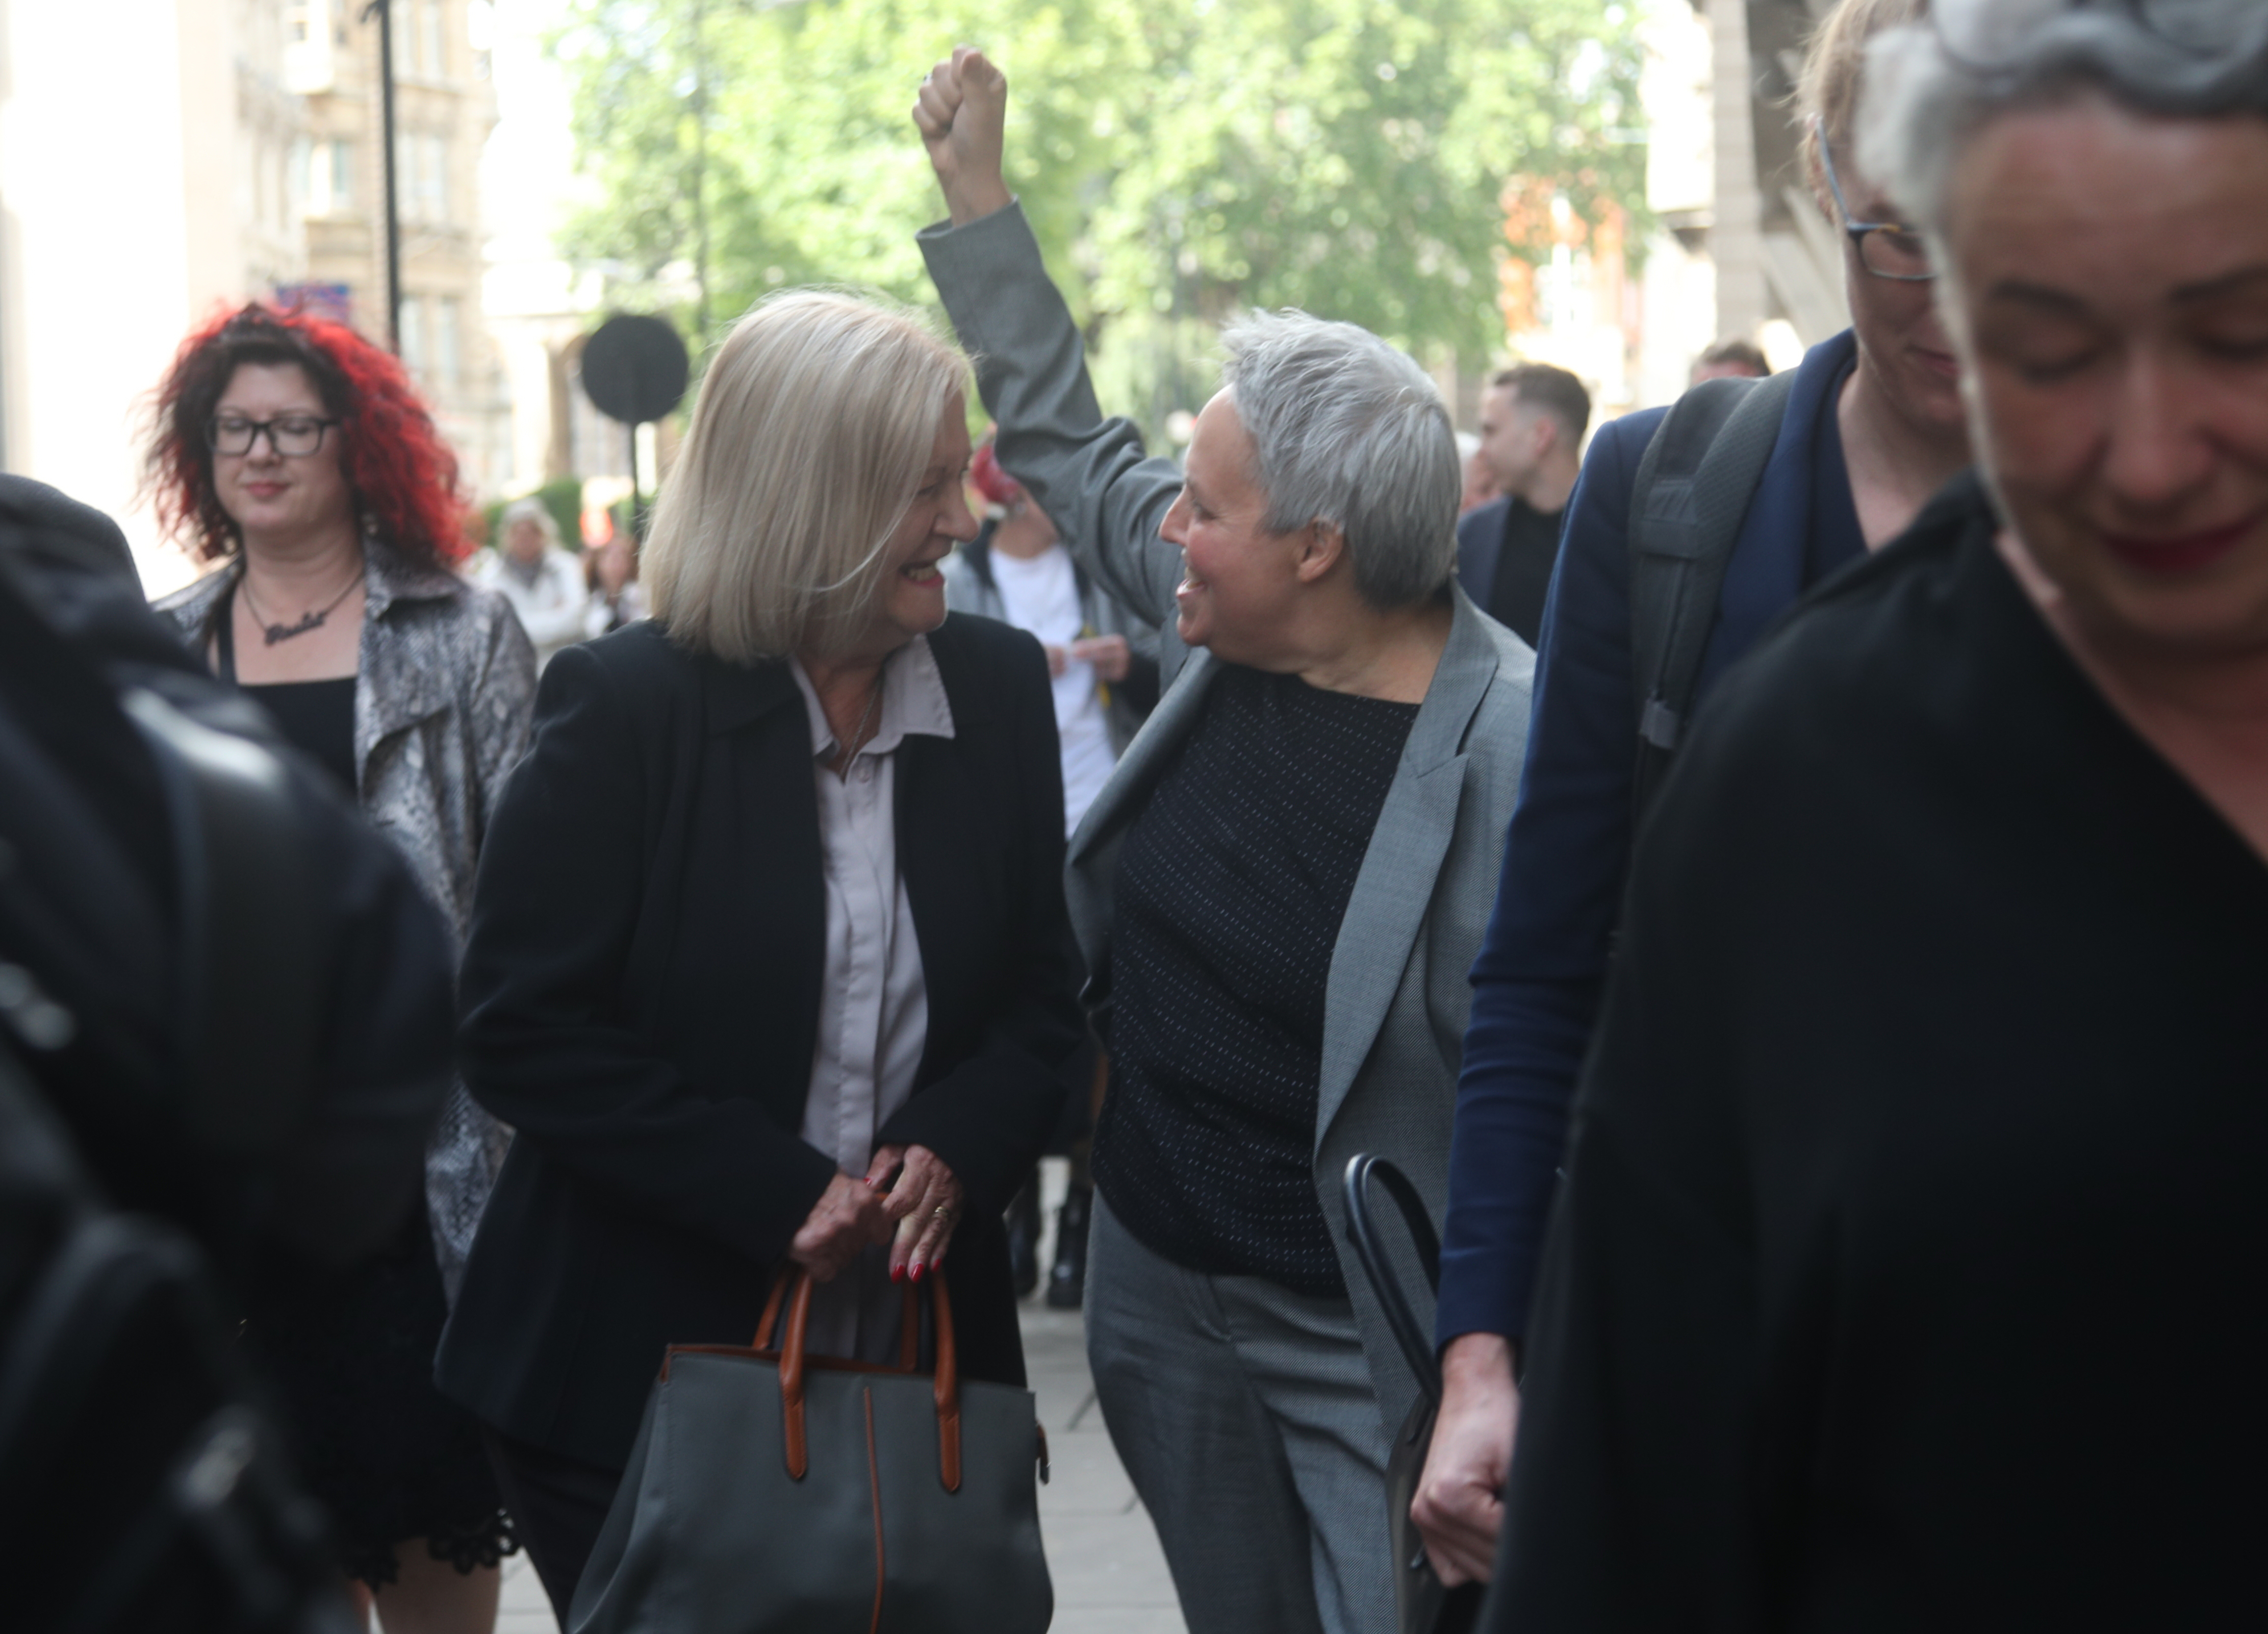 Sally Challen, with lawyer Harriet Wistrich, leaving the Old Bailey after hearing she will not face a retrial over the death of her husband Richard Challen in 2010.